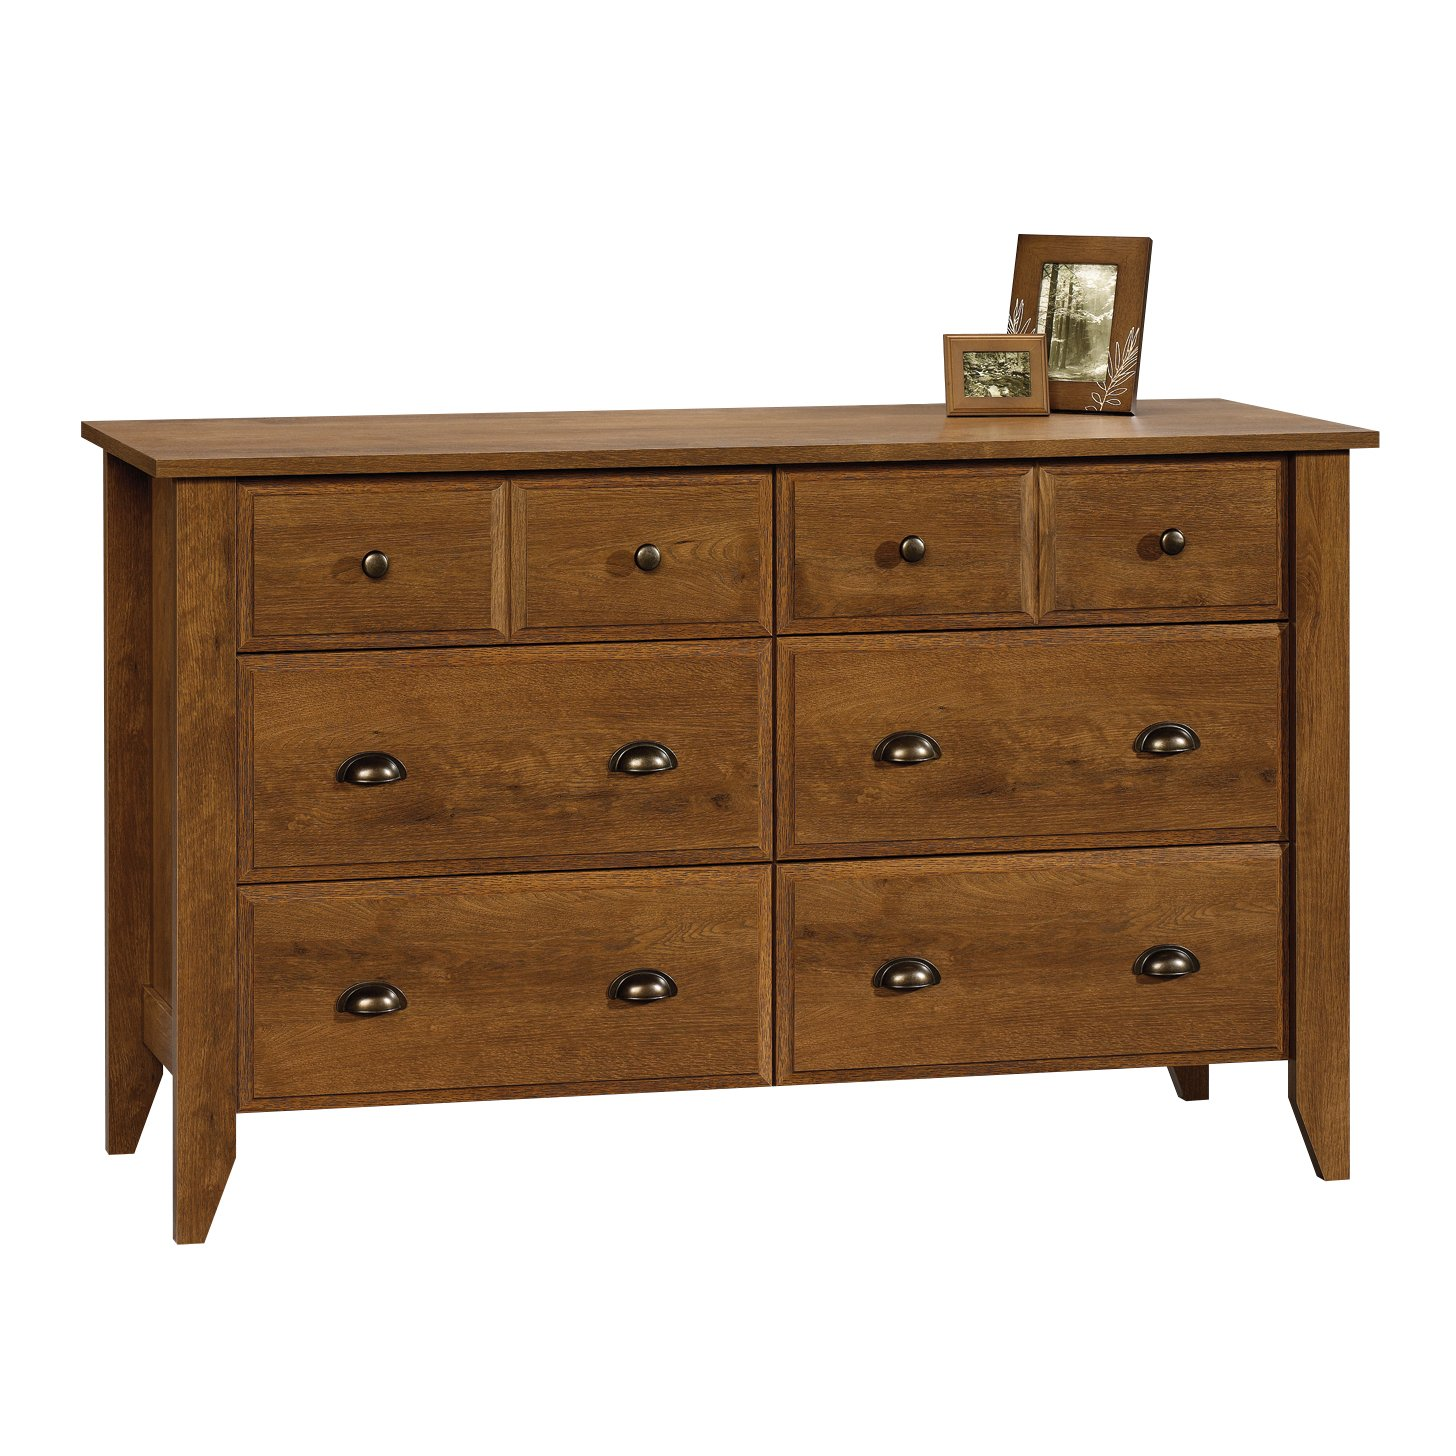 Sauder Shoal Creek Dresser, Oiled Oak 410287